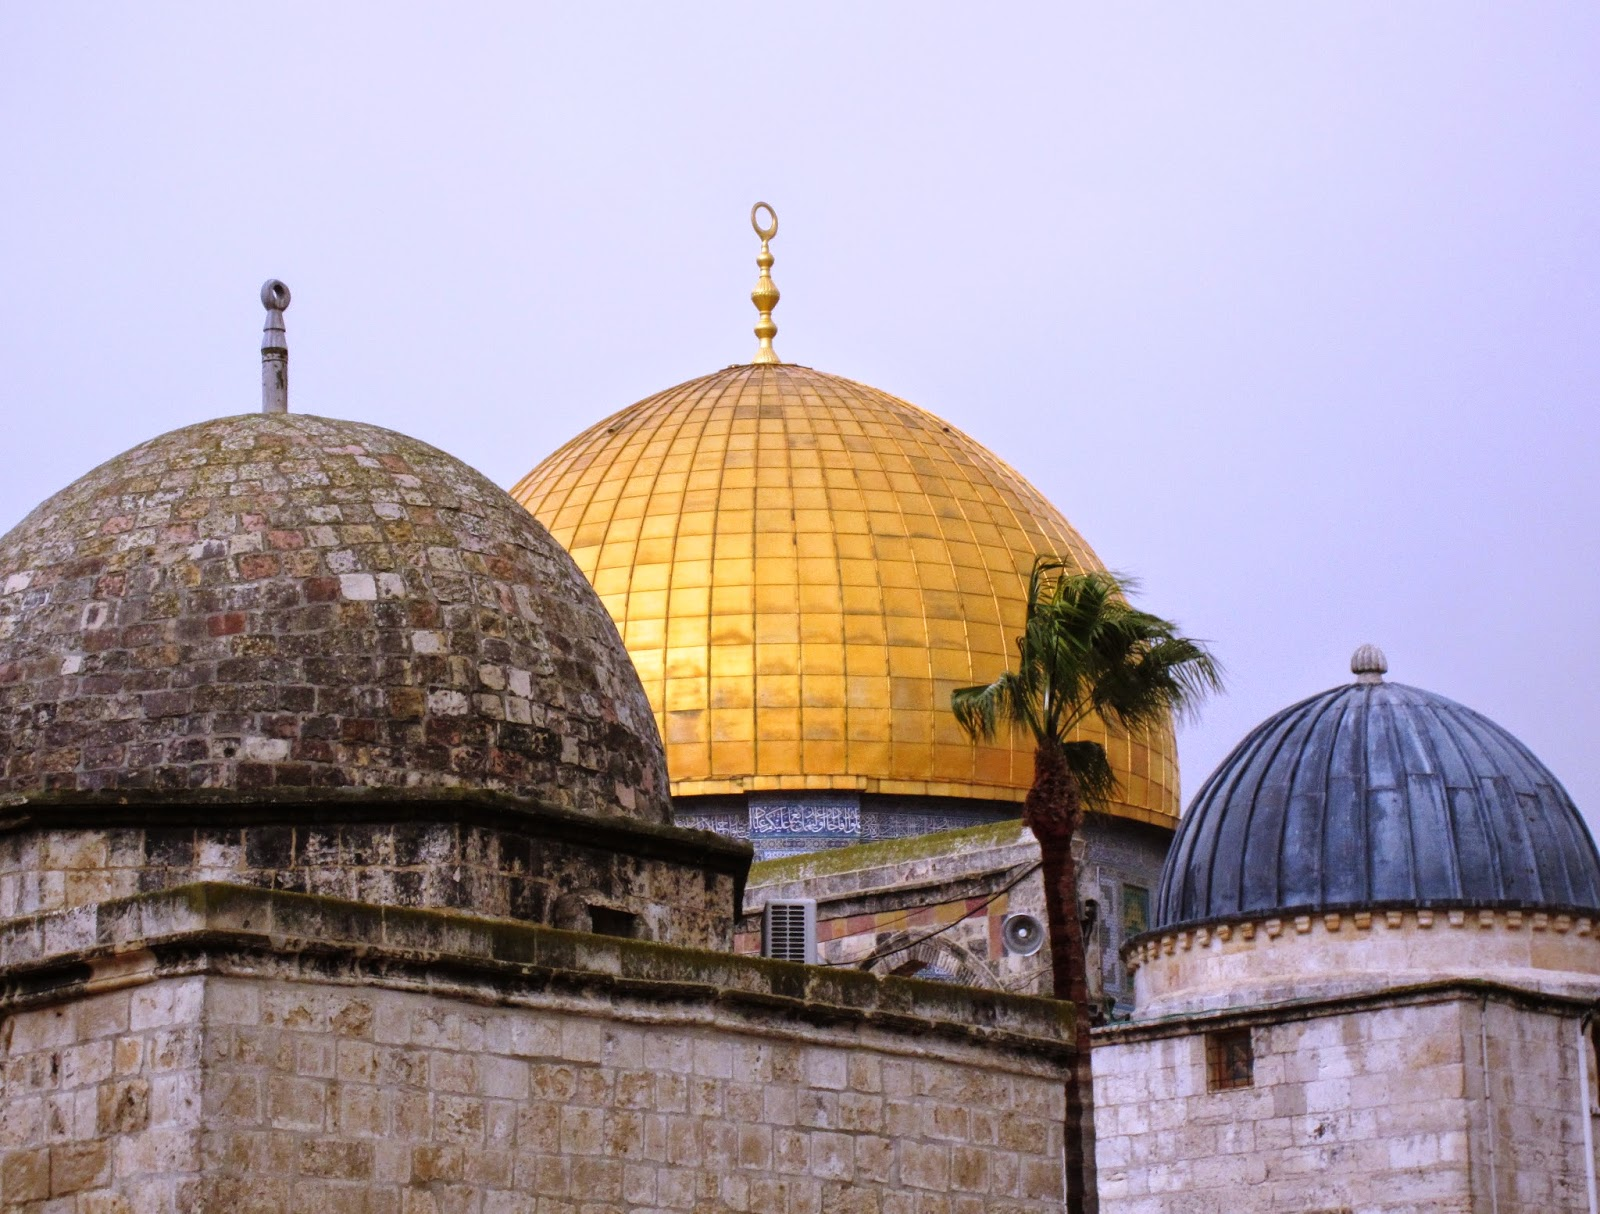 Domes on Dome of the Rock / Souvenir Chronicles